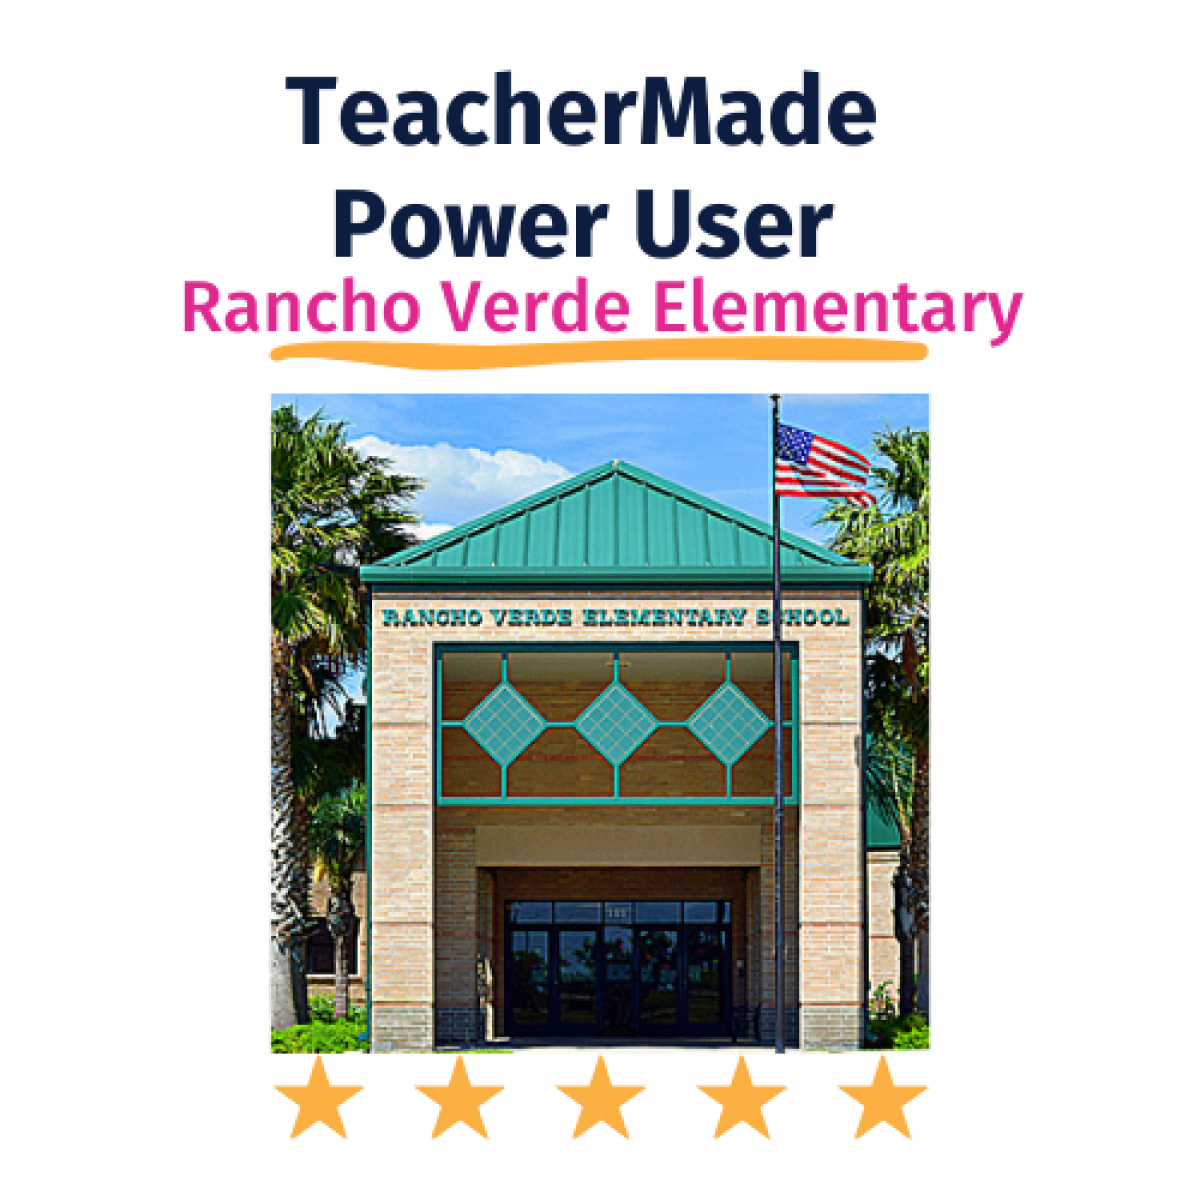 TeacherMade Power User Profile